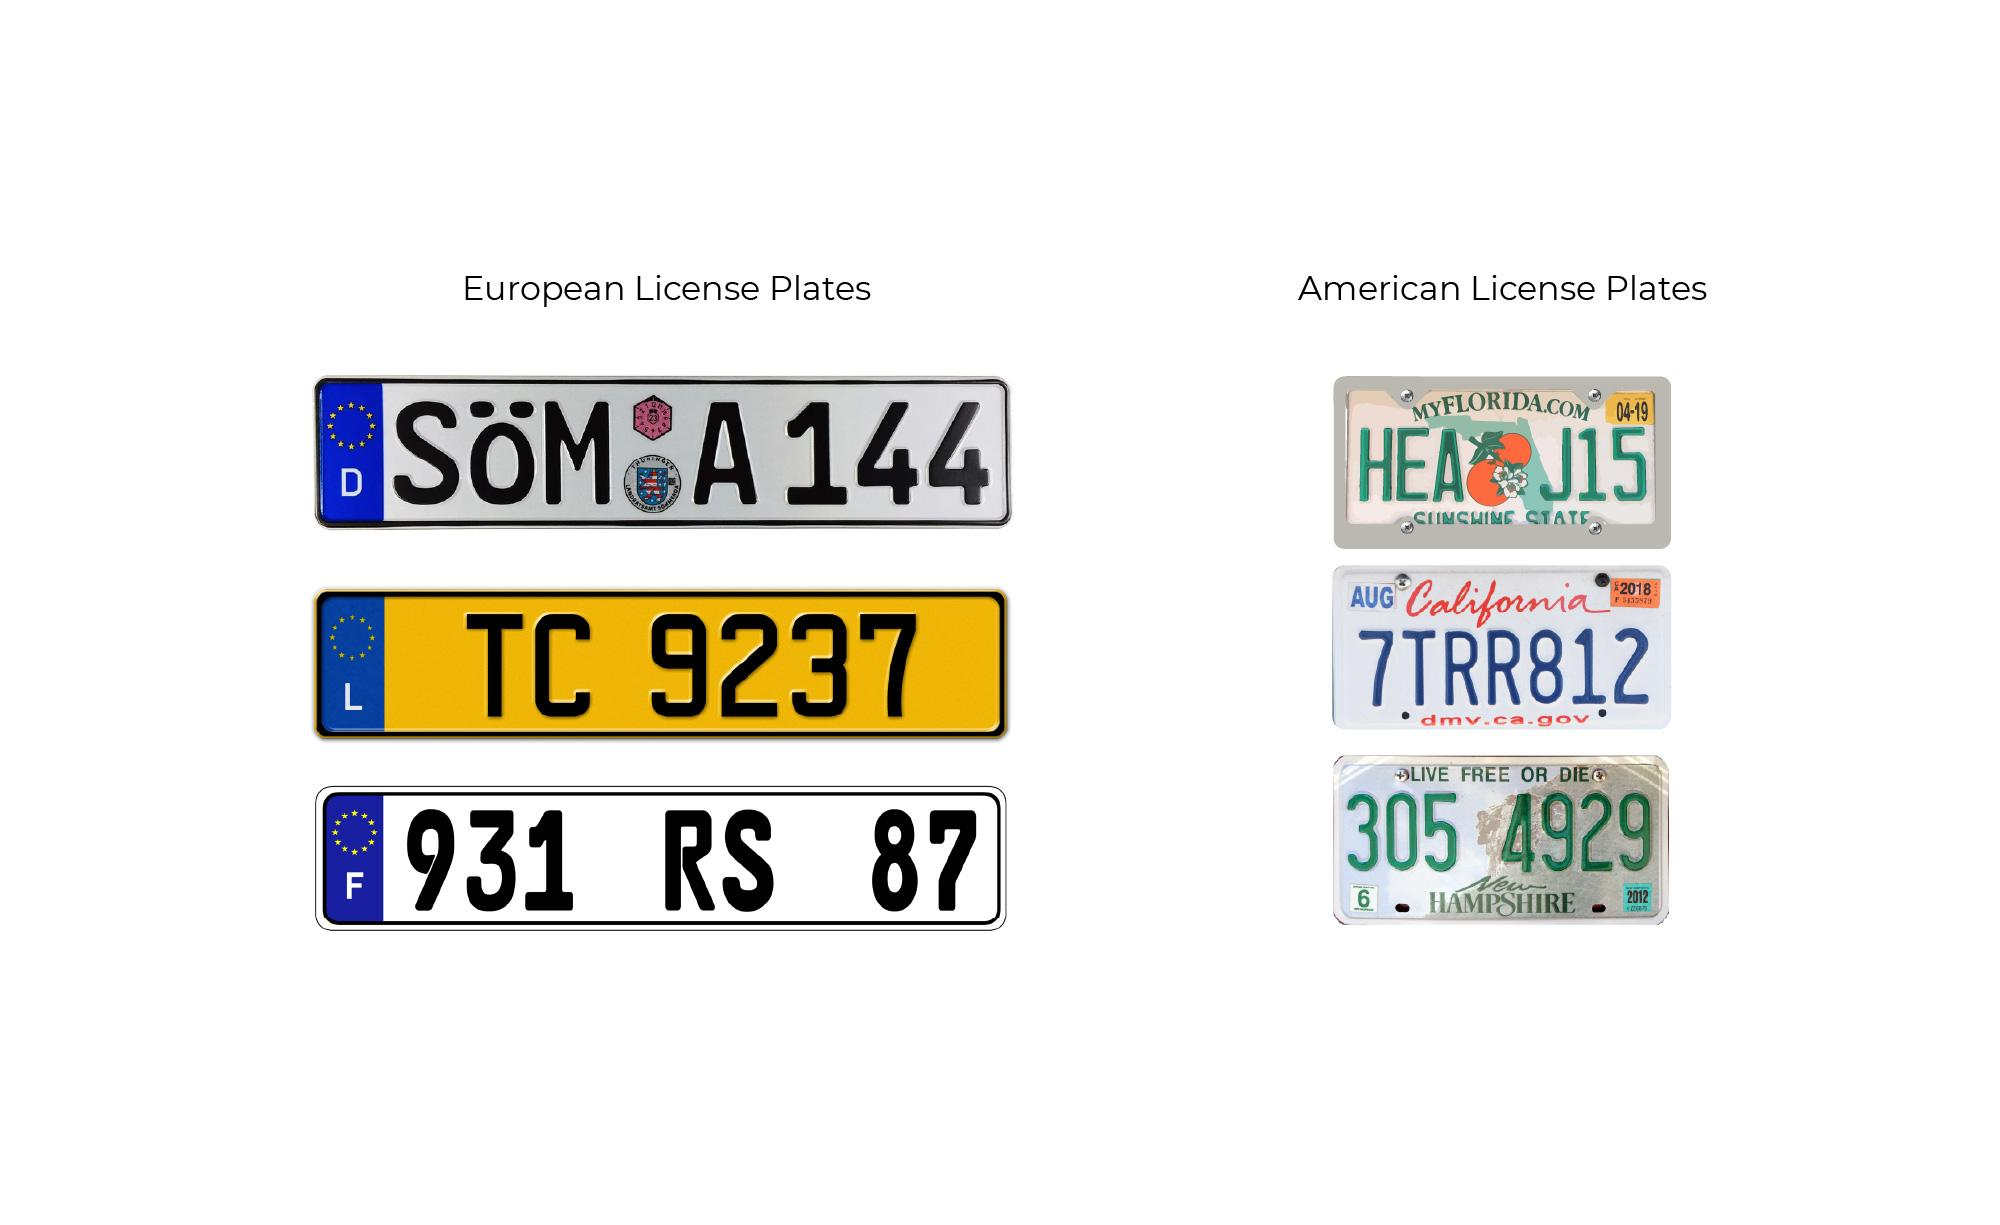 Different types of License plates need different algorithm OCR rulesrules